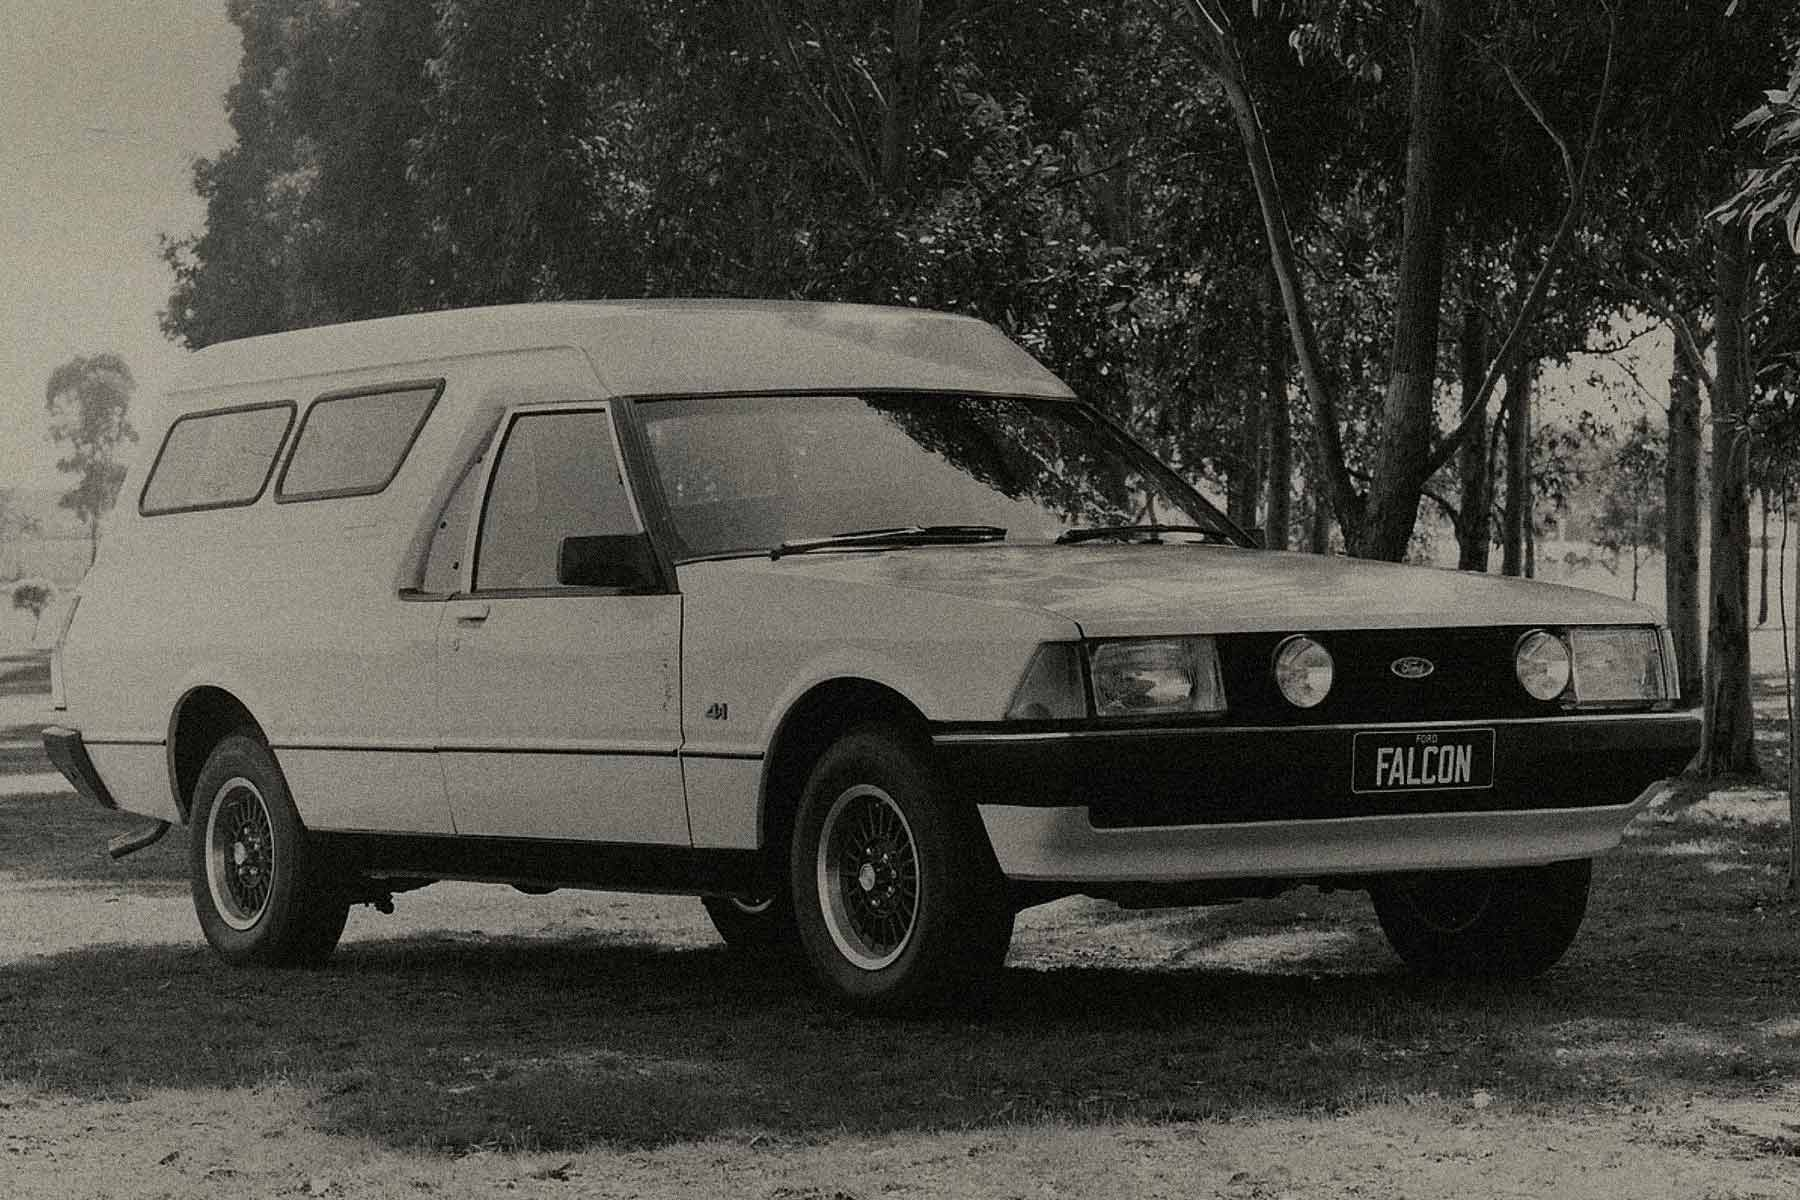 Falcon panel van car